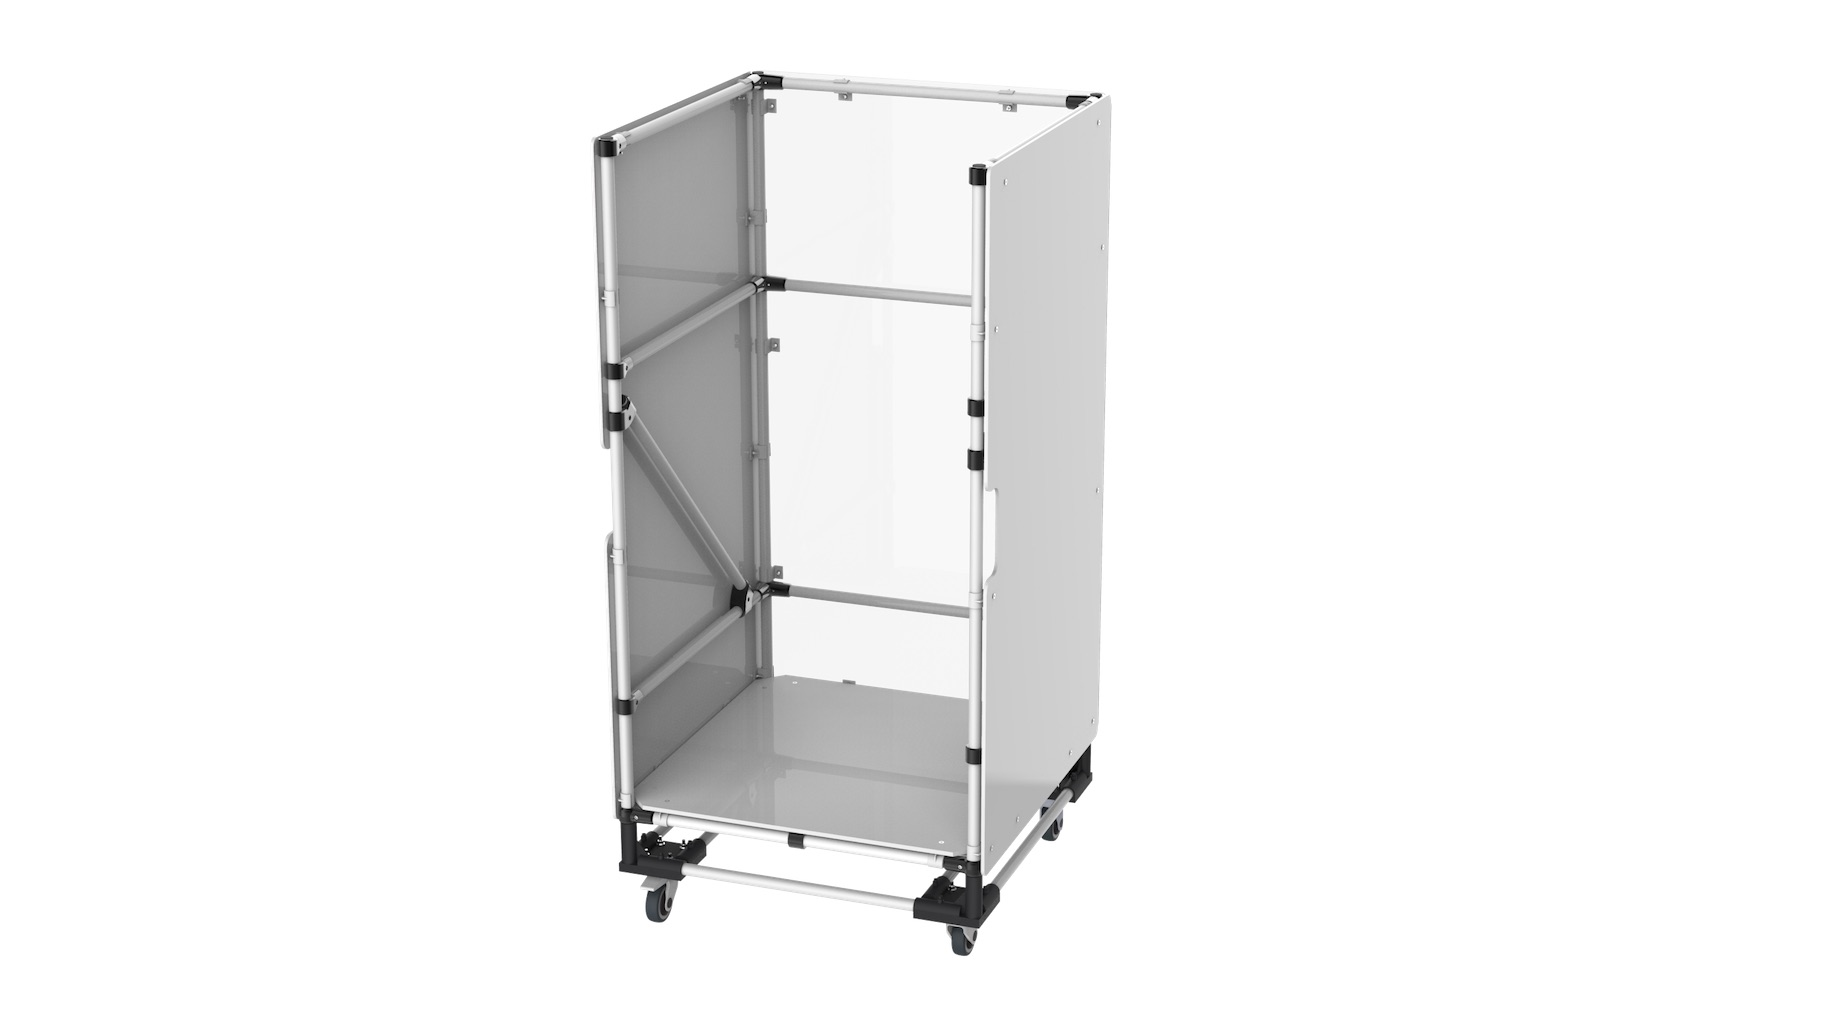 Logistic - Pre-assembled kitting and transport trolley.